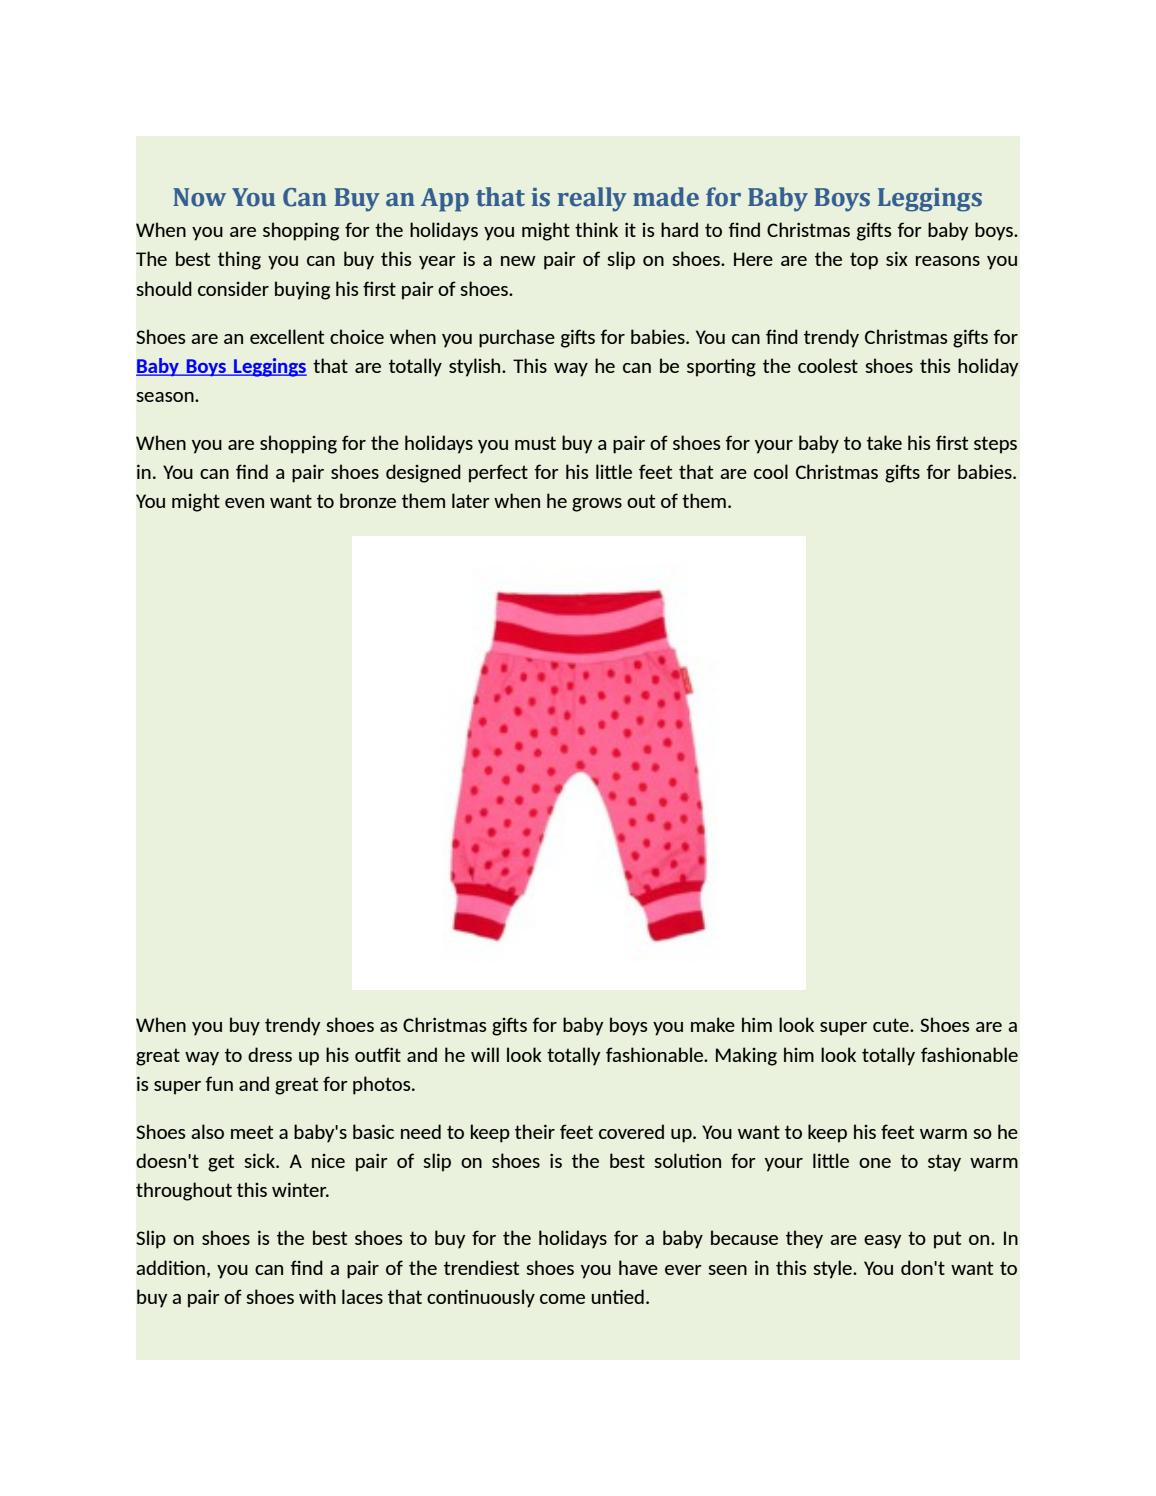 1c7f39f4d7 Now You Can Buy an App that is really made for Baby Boys Leggings by ...